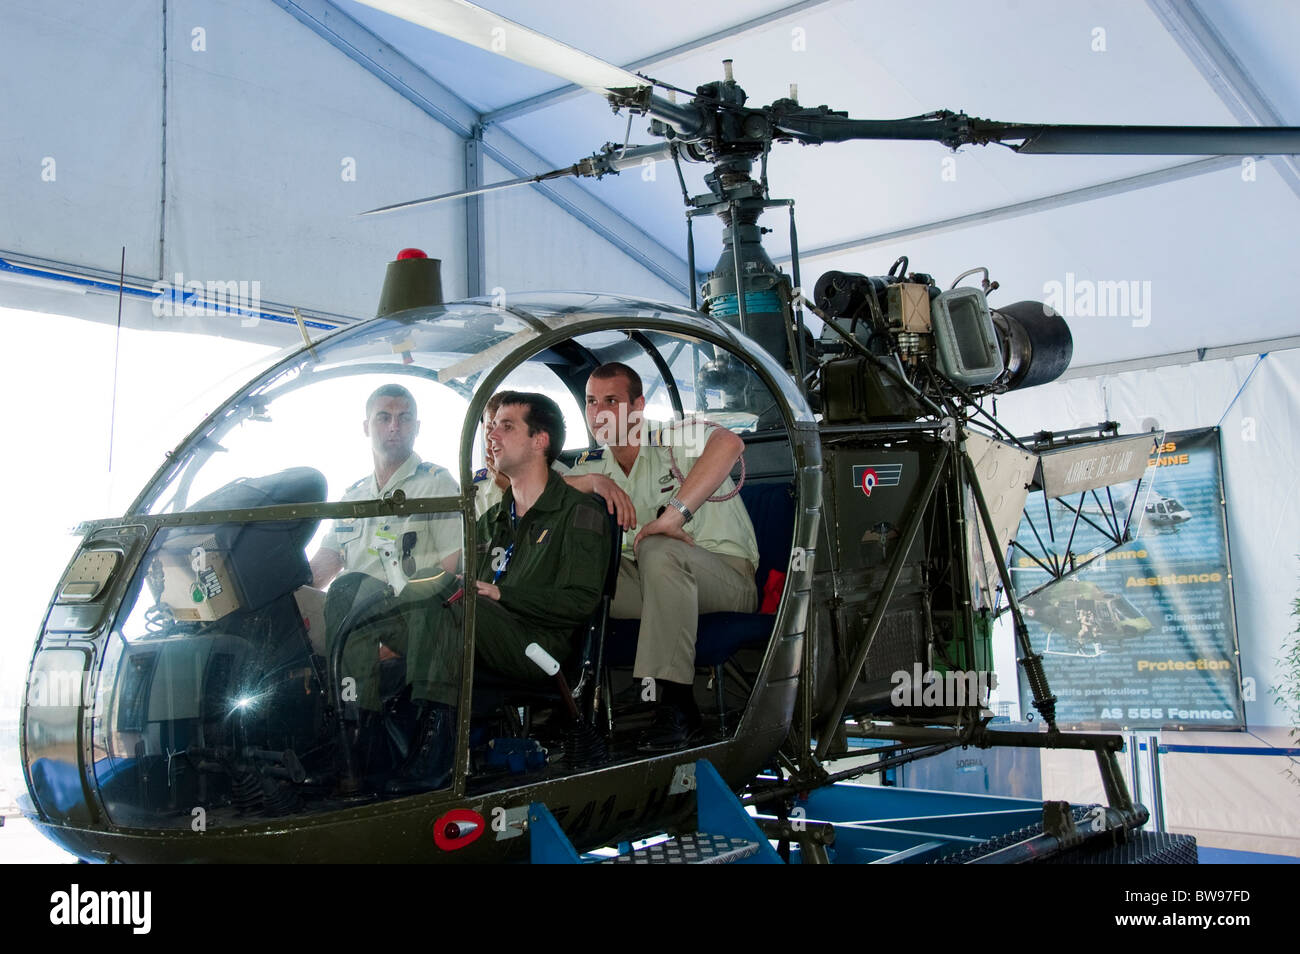 Paris, France, Trade Show, French Soldiers at Paris Air Show, the Bourget Airport, Looking at French Air Force Helicopter - Stock Image